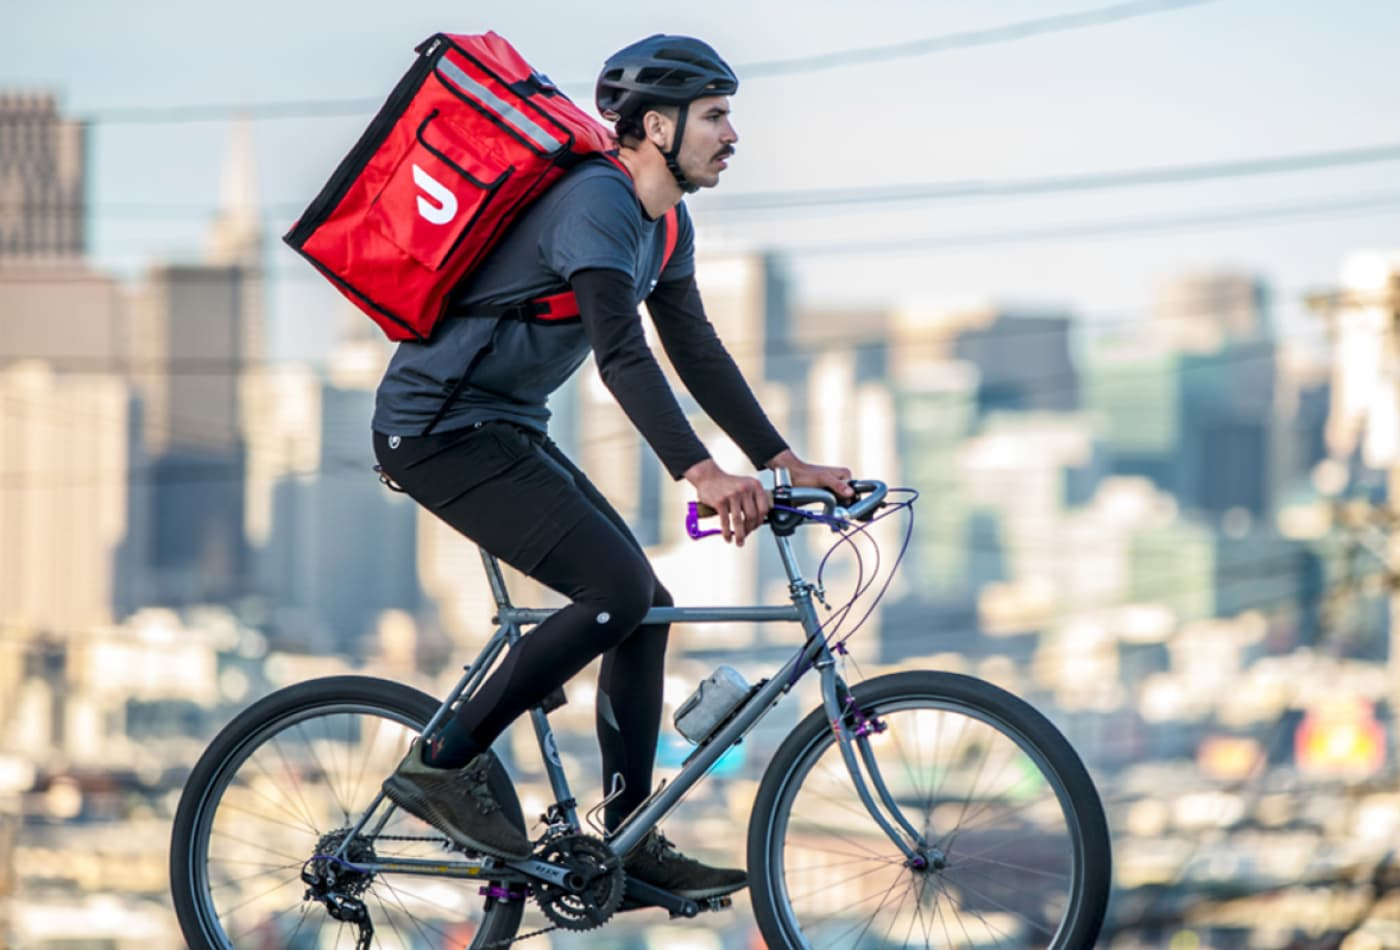 DC attorney general sues DoorDash, claiming it misled customers and pocketed workers' tips